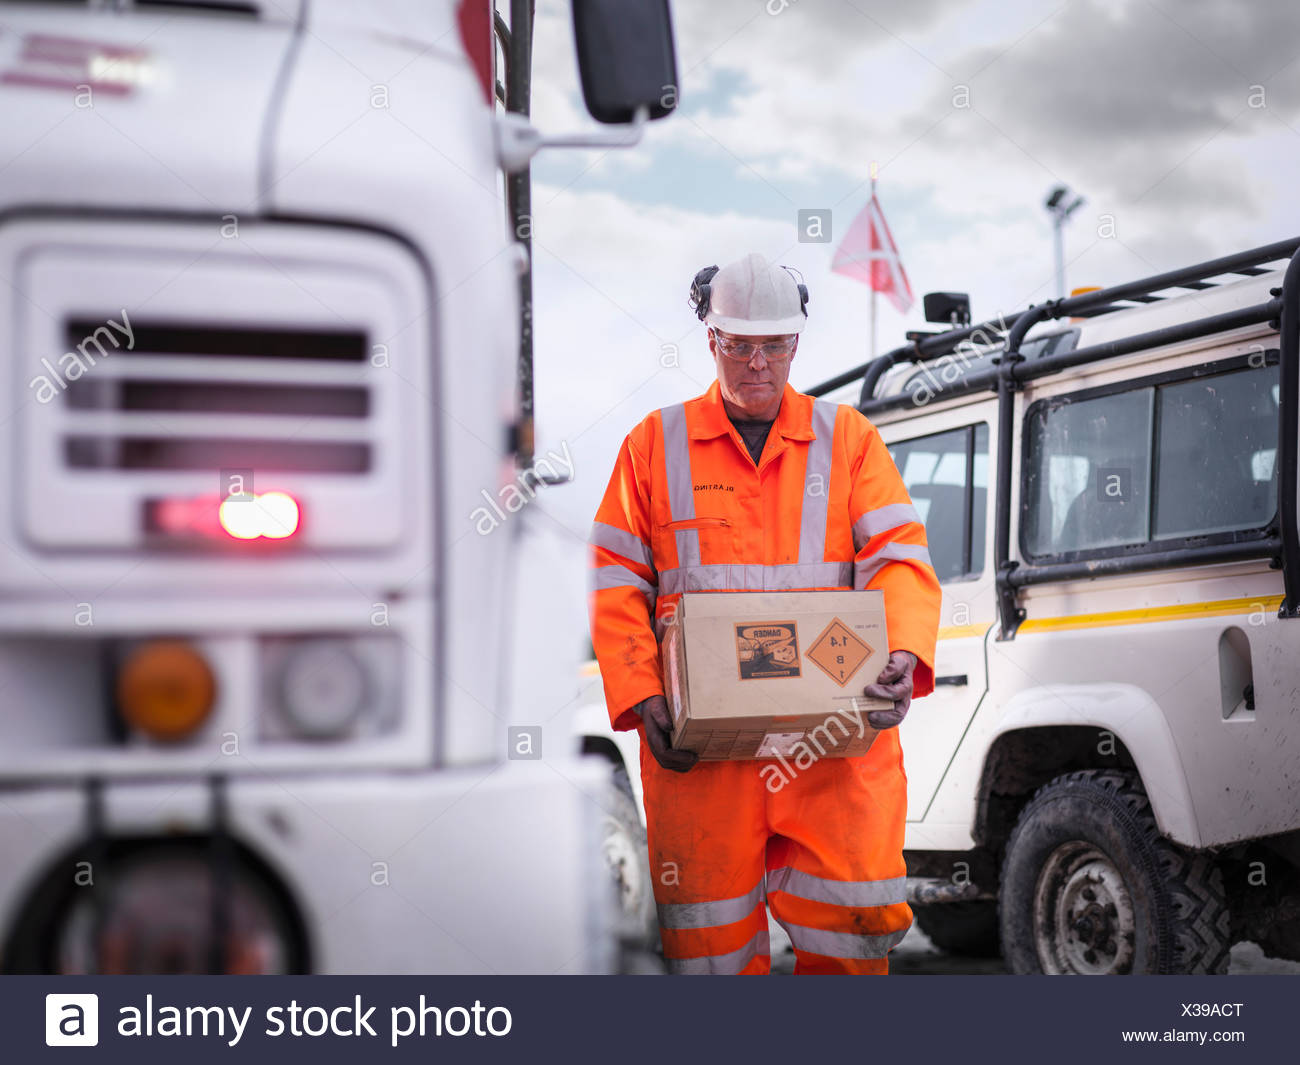 Explosives expert carrying box in surface coal mine - Stock Image